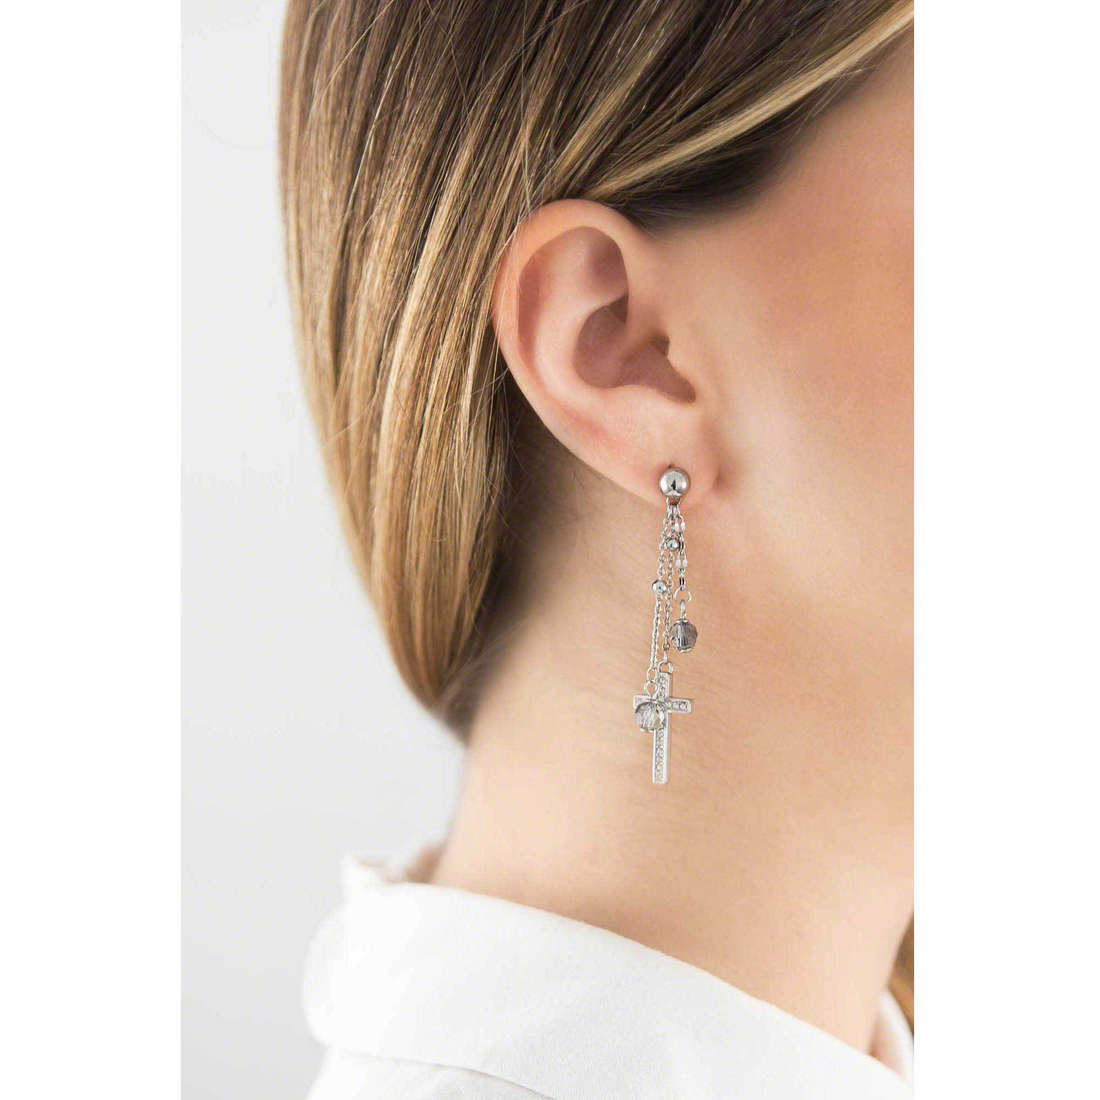 Brosway boucles d'oreille Dogma femme BDO22 indosso